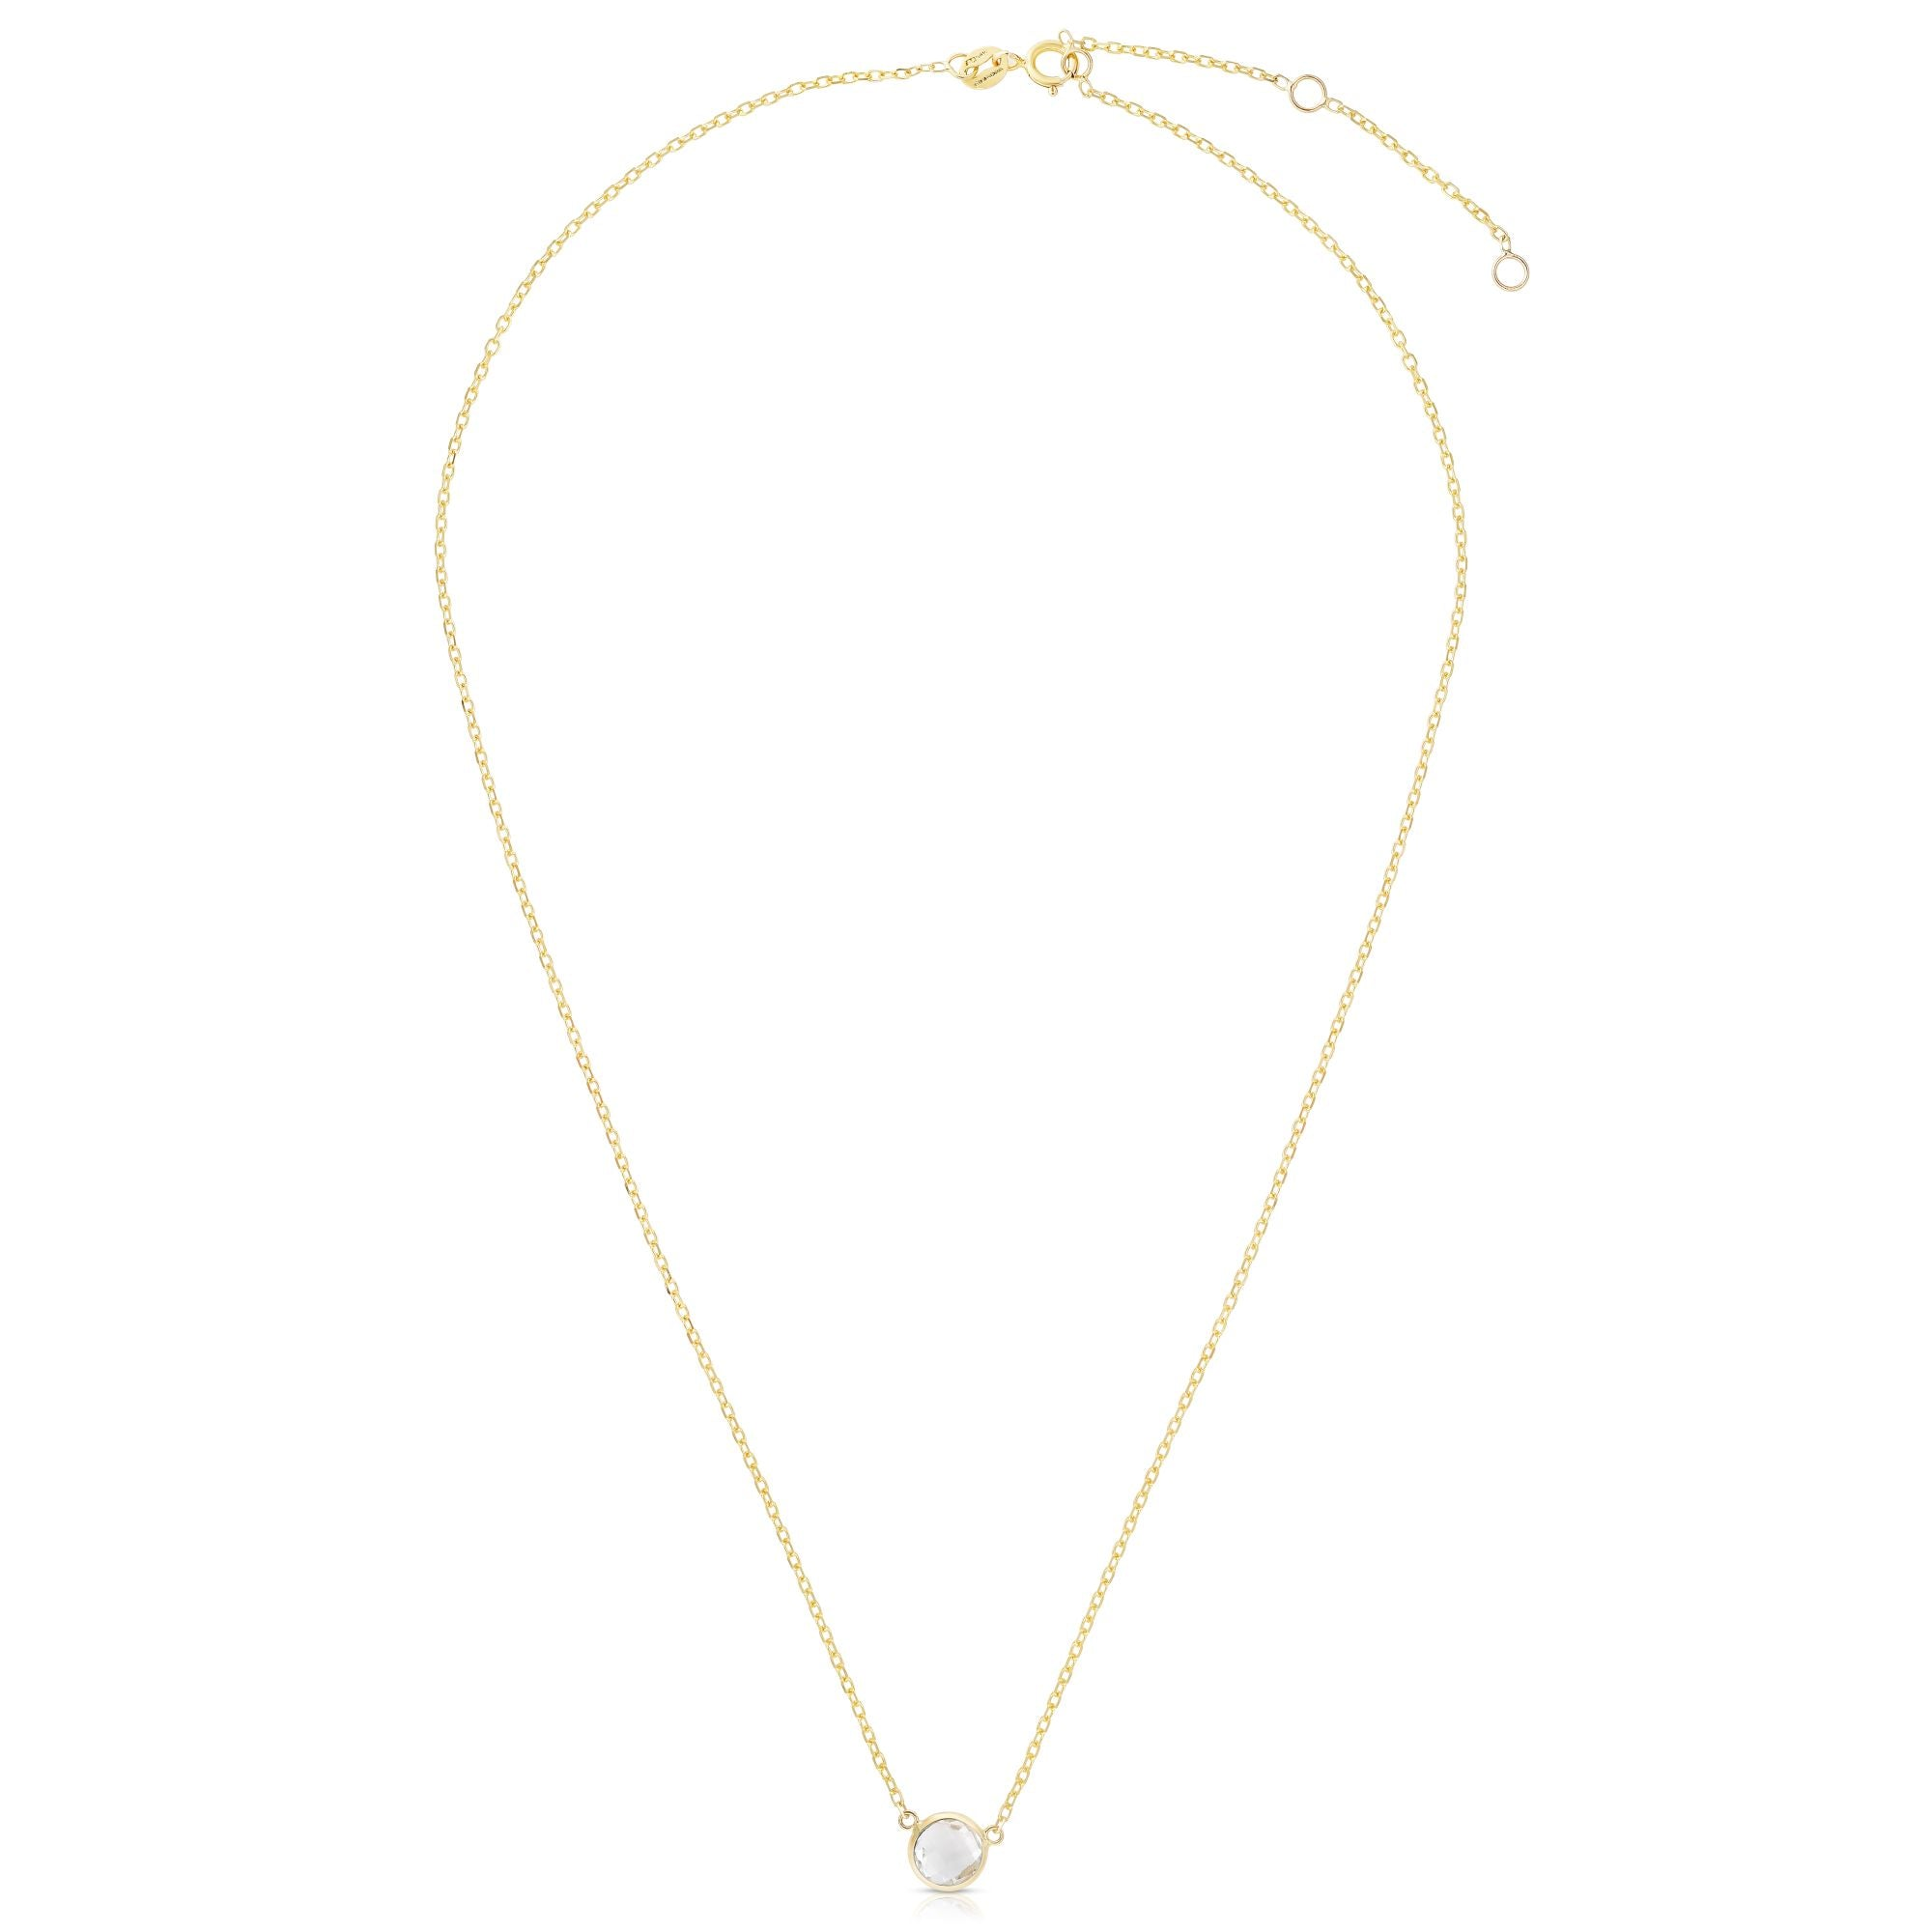 14K Gold & White Topaz Solitaire Necklace